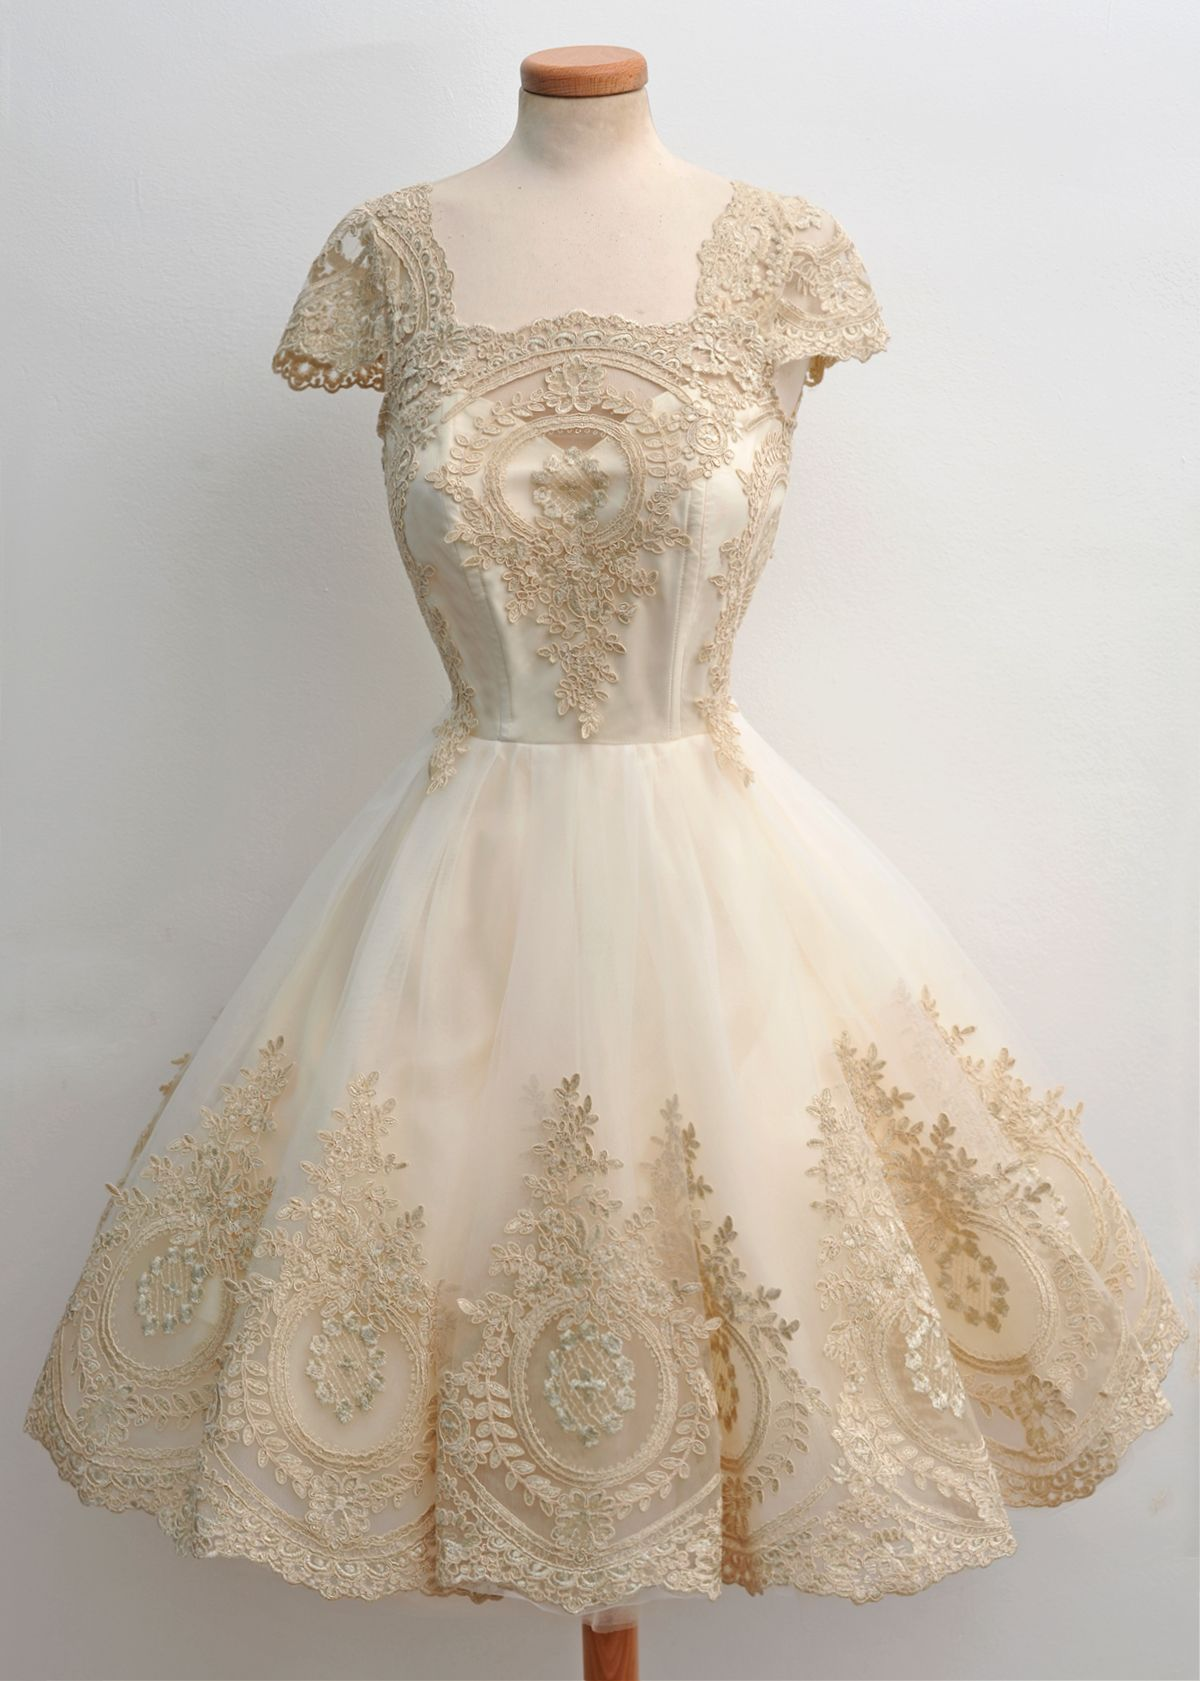 Chotronette fairytales pinterest champagne ivory and gold